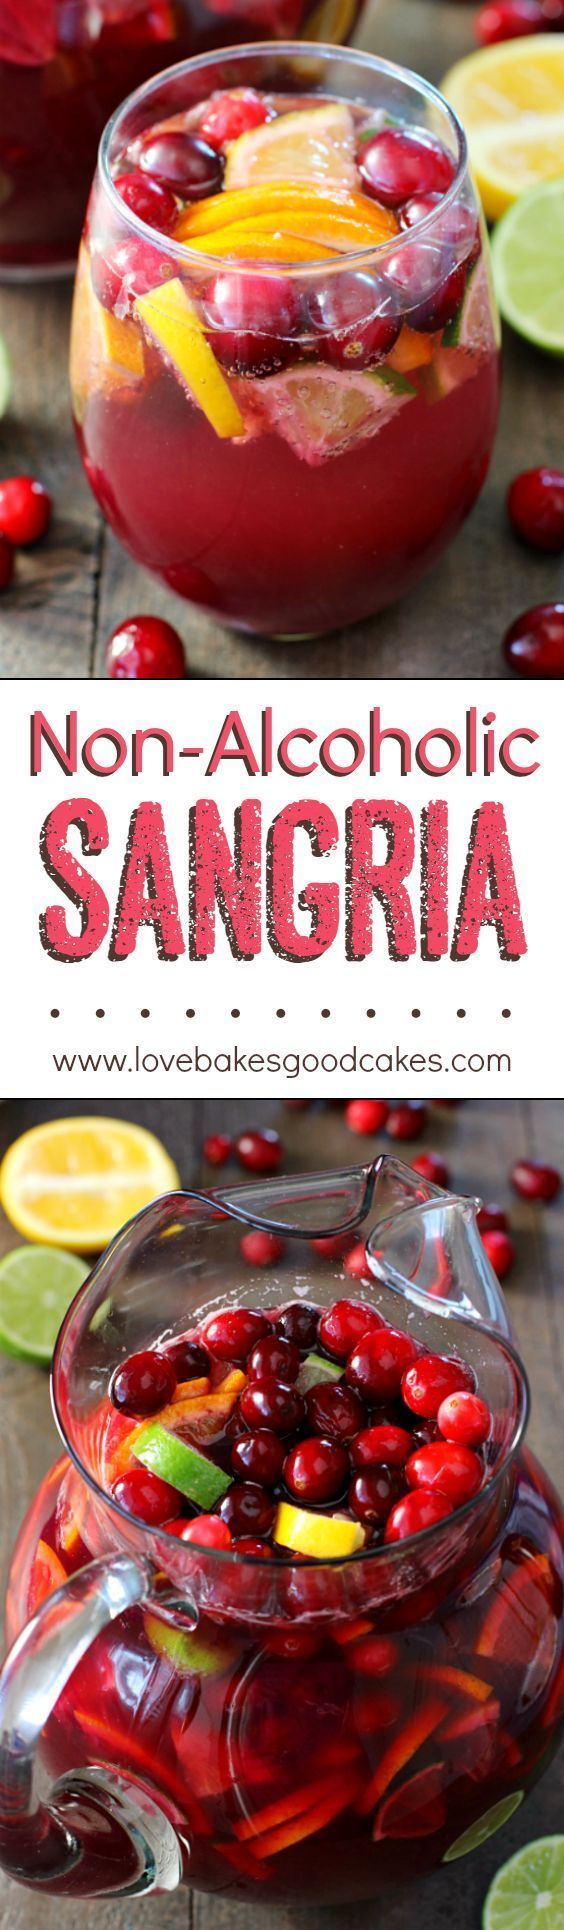 Non alcoholic sangria on Pinterest | Virgin sangria, What's in sangria ...